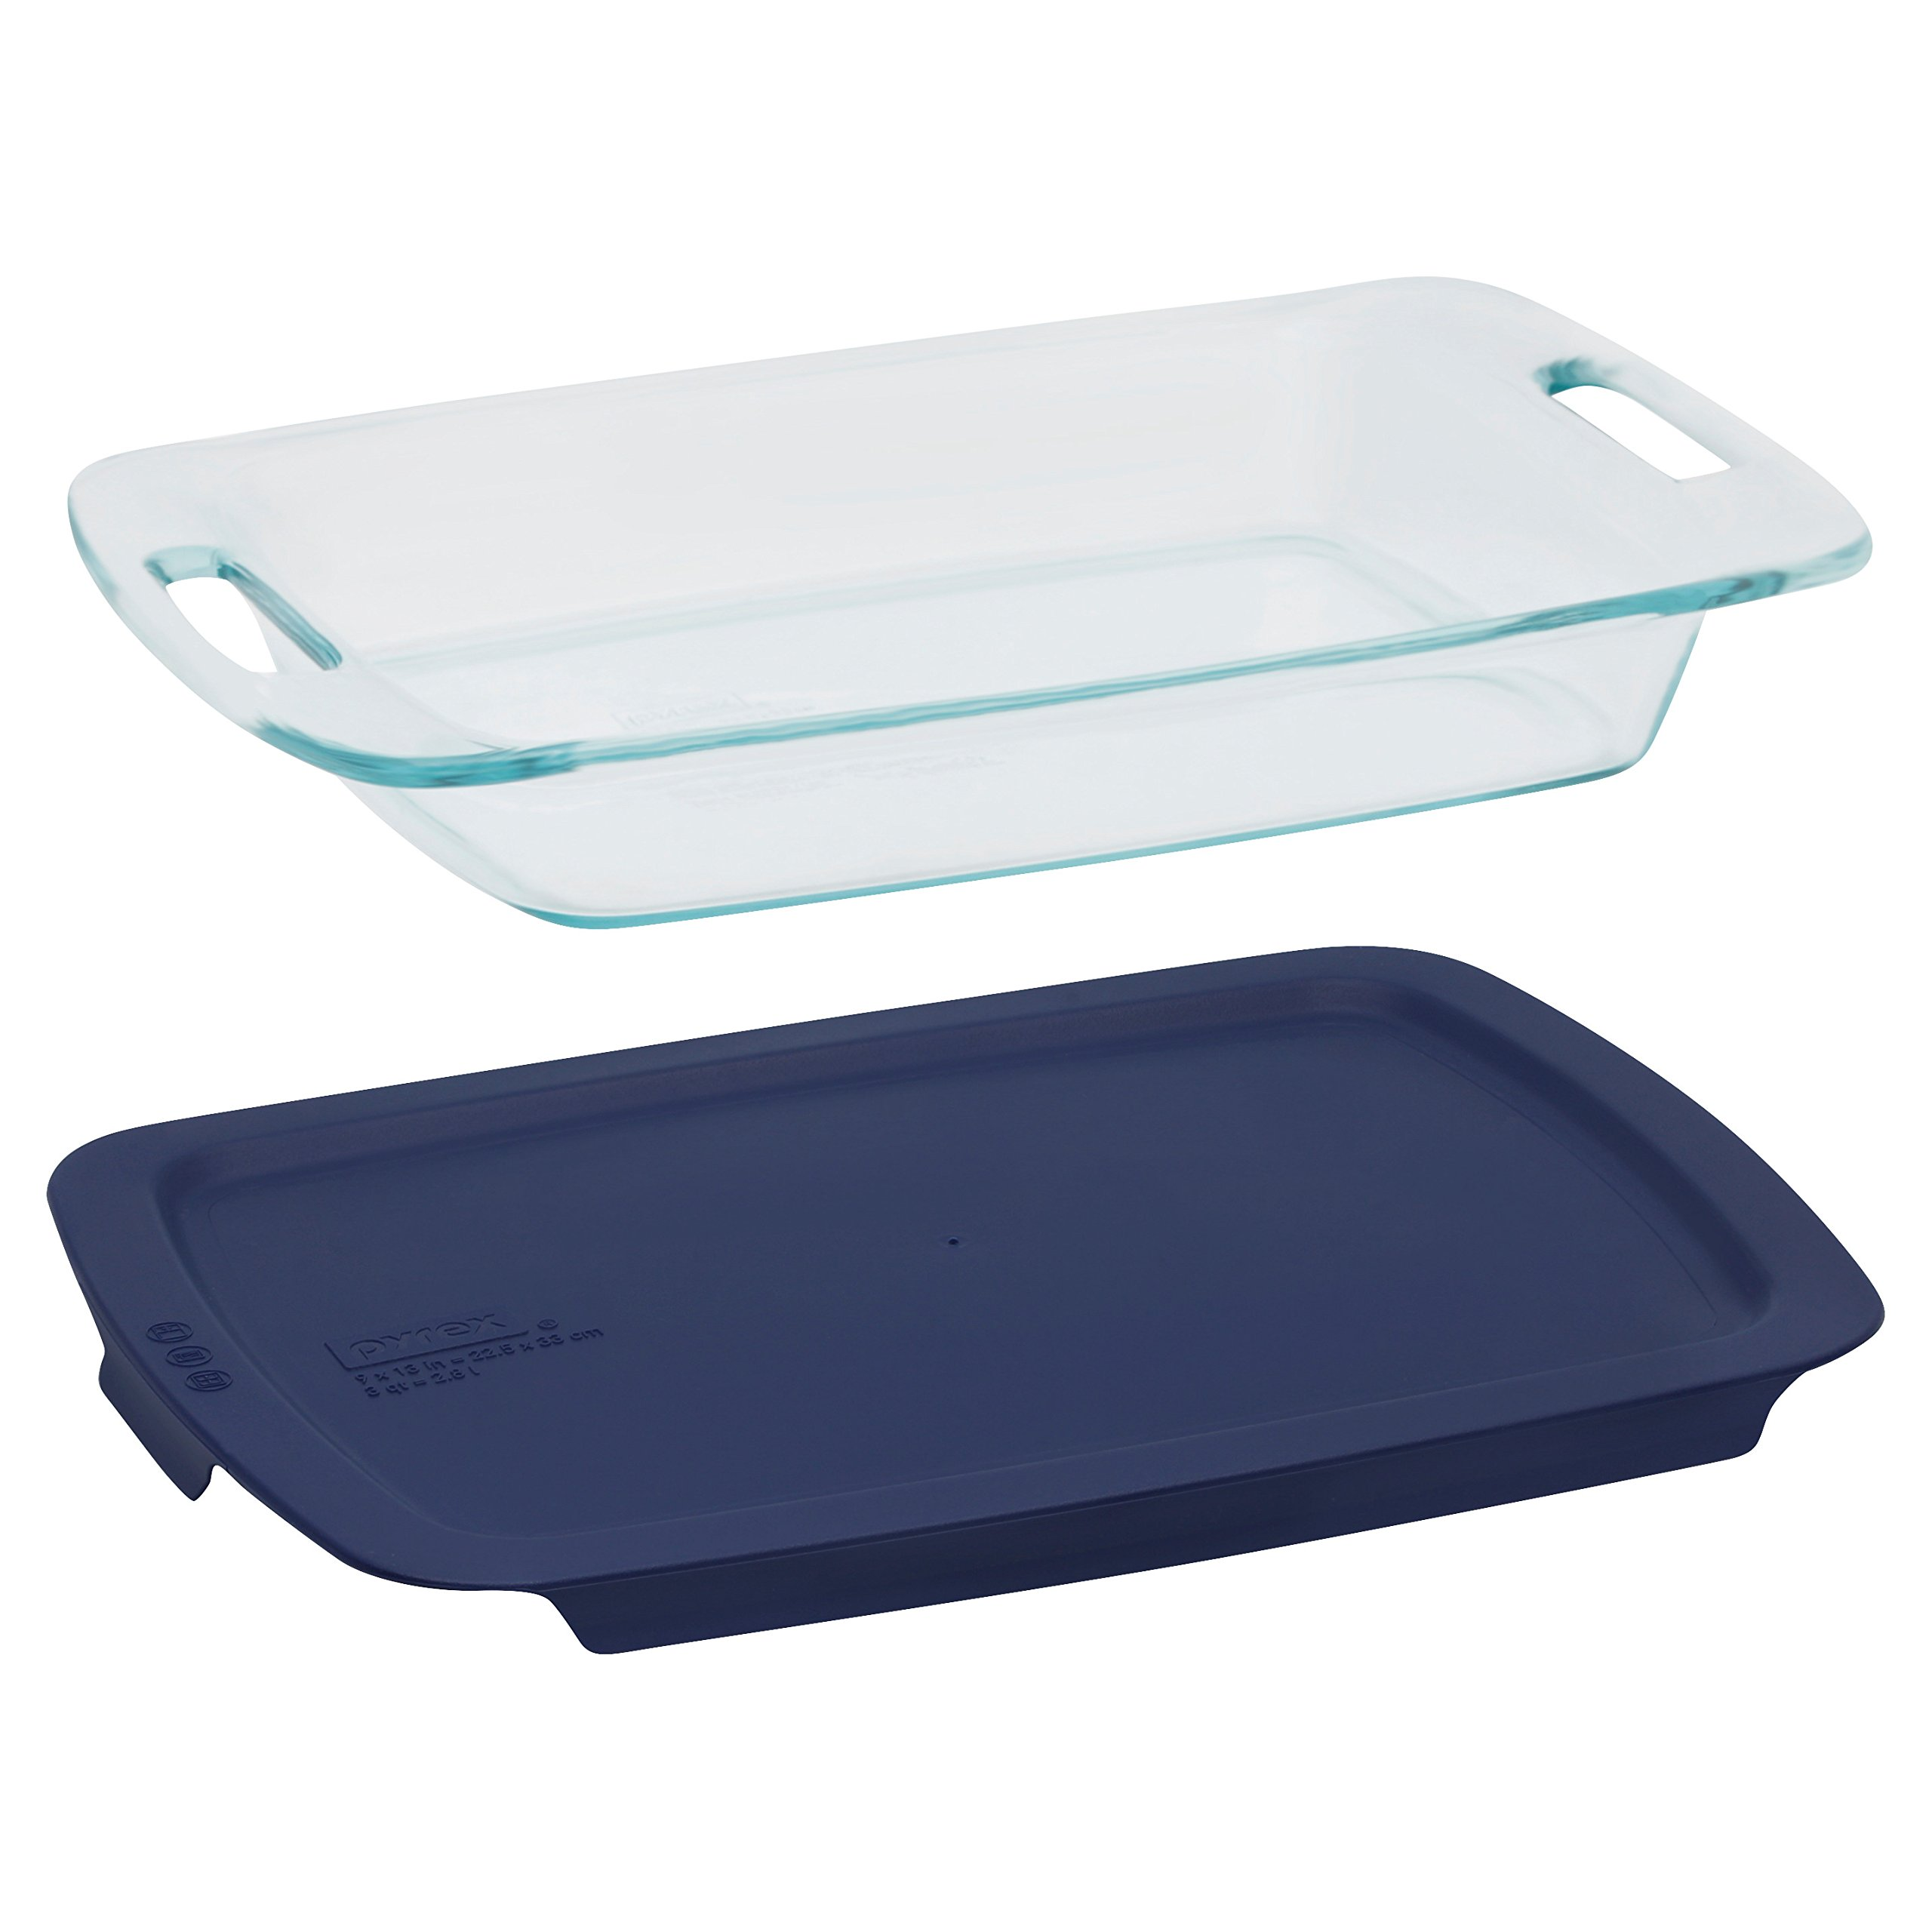 Pyrex Easy Grab Glass Bakeware and Food Storage Set (8-Piece, BPA-free) by Pyrex (Image #3)